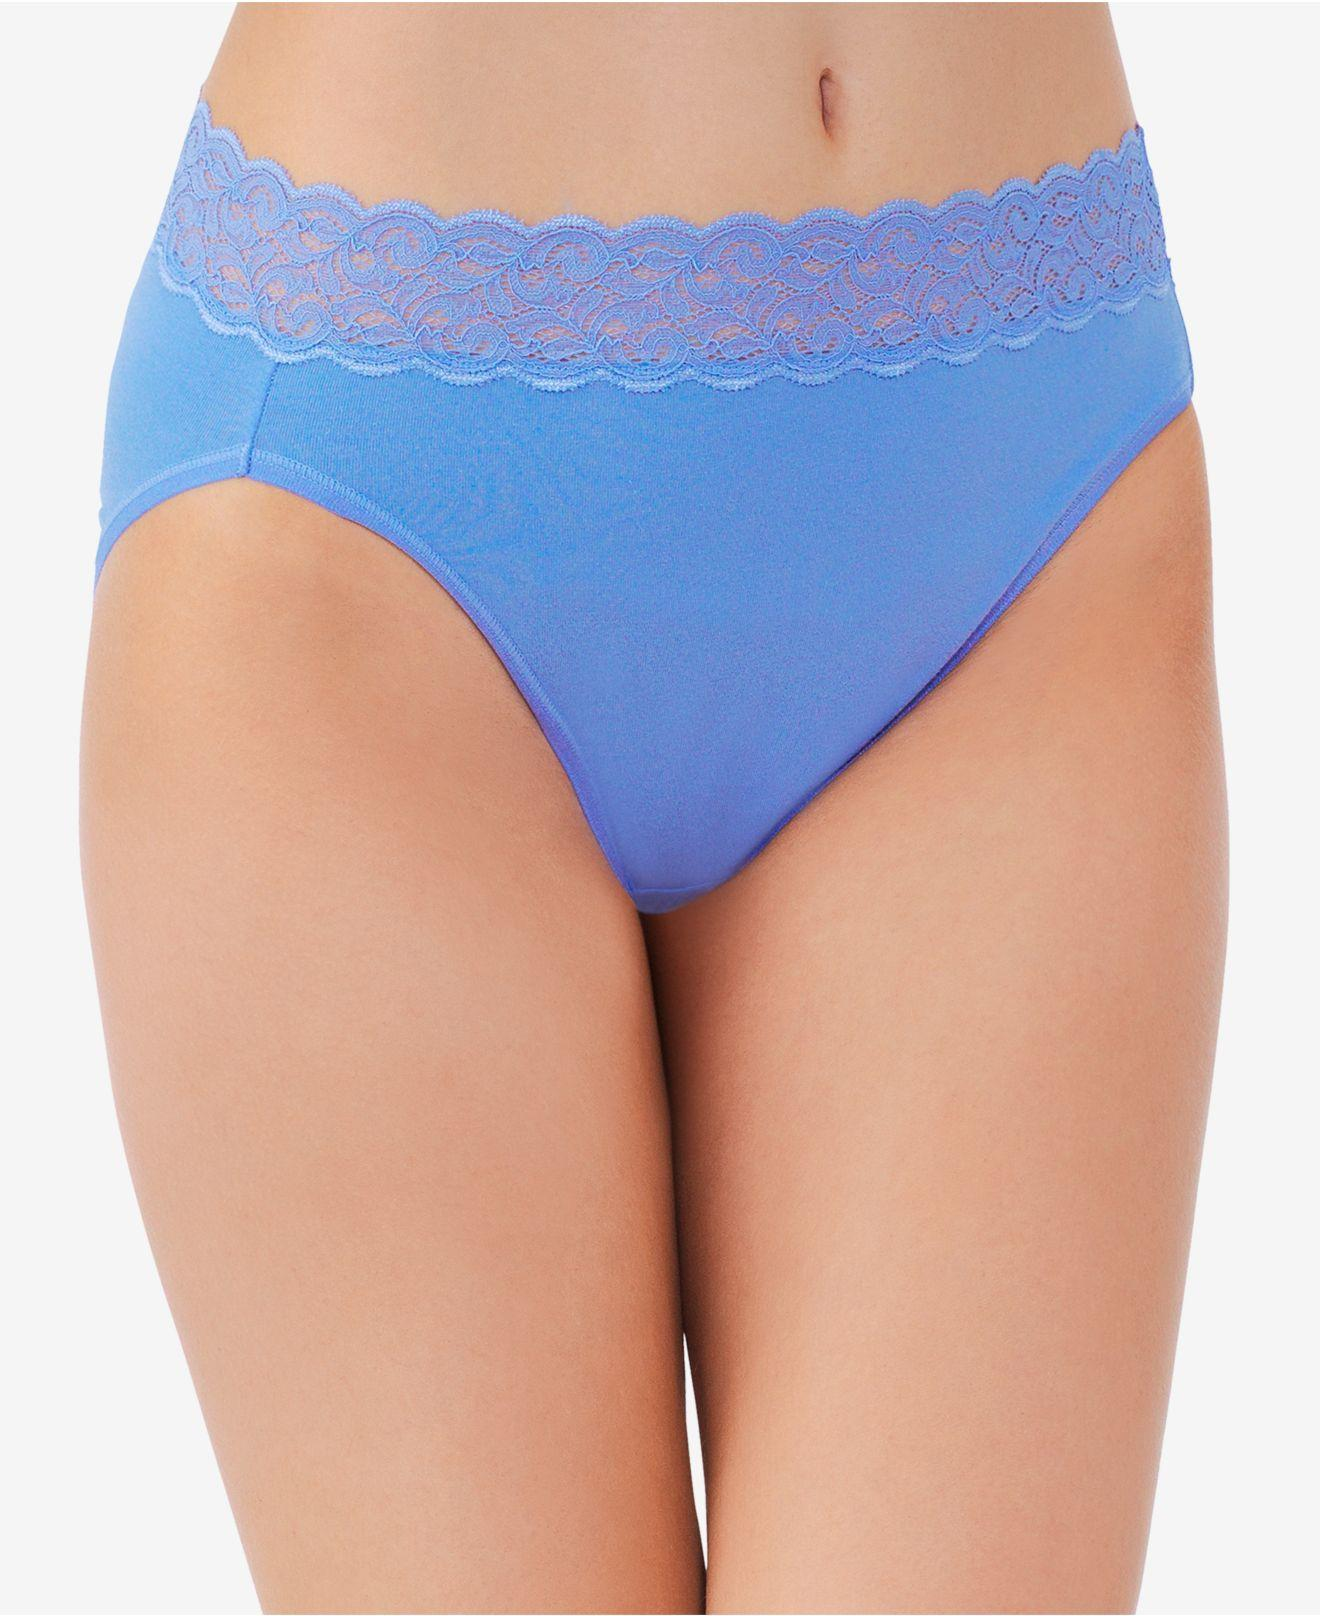 095717e082b Lyst - Vanity Fair Flattering Lace High-cut Brief 13395 in Blue